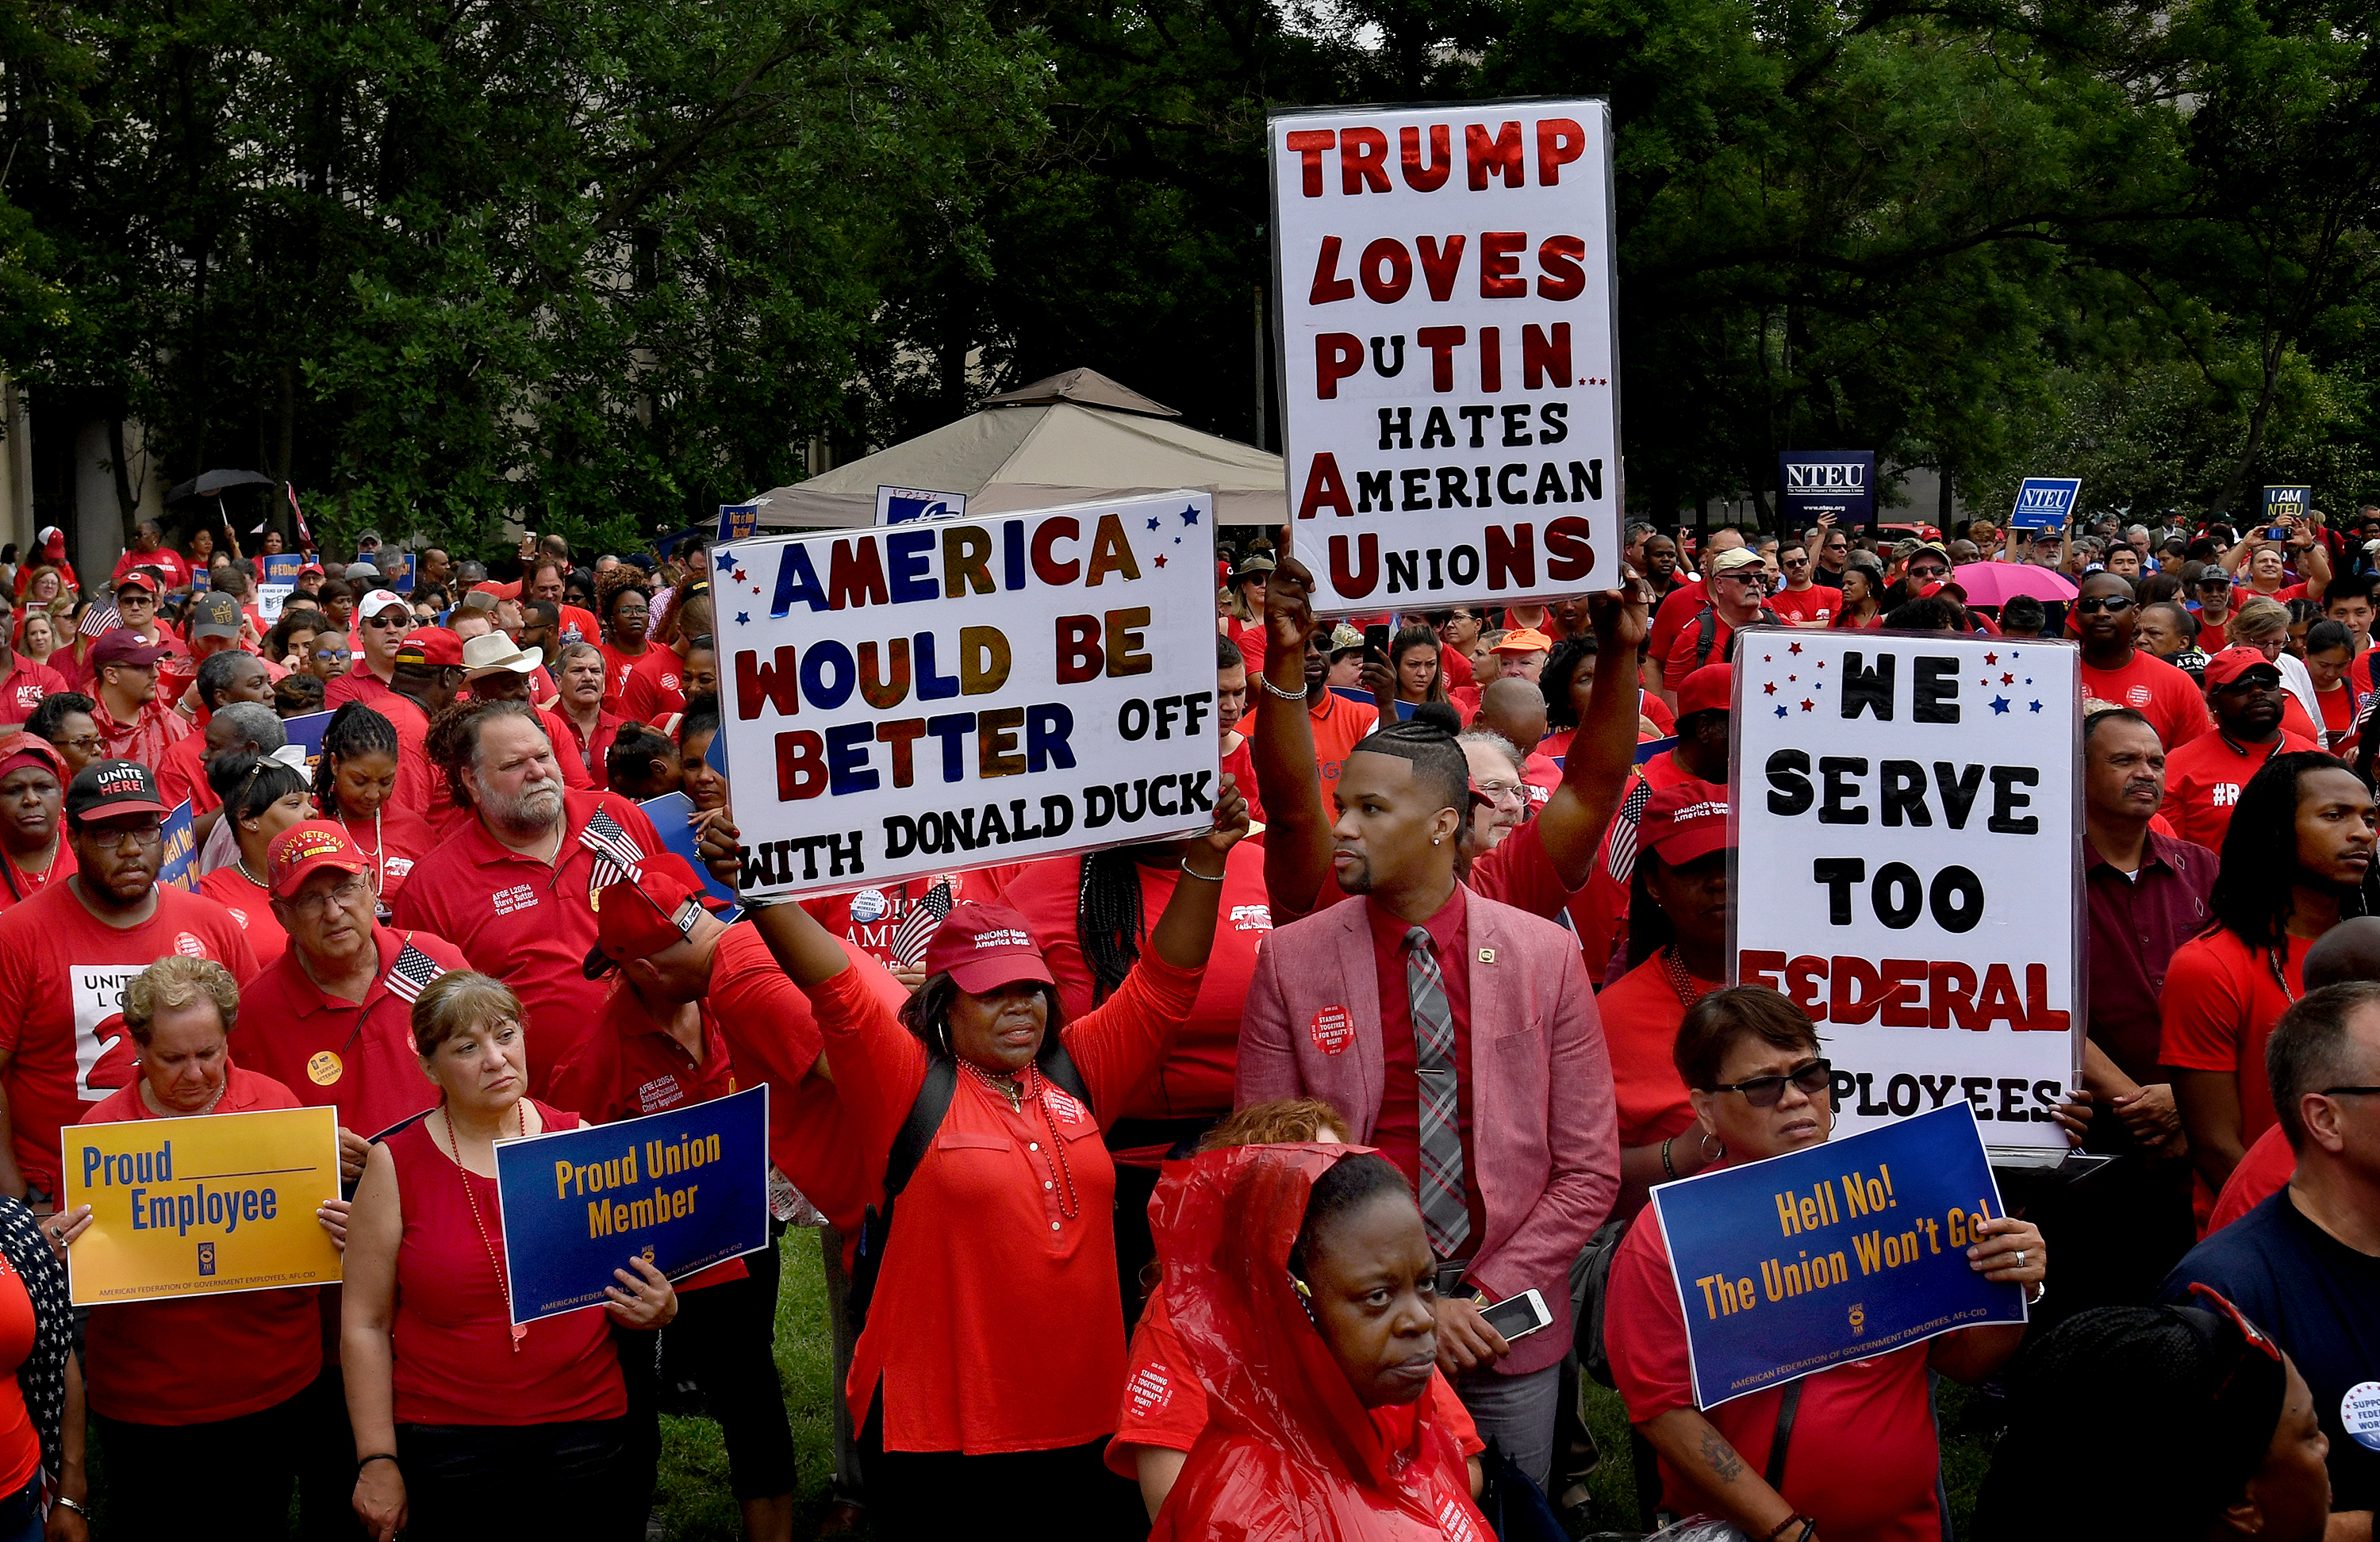 In victory for unions, judge overturns key parts of Trump